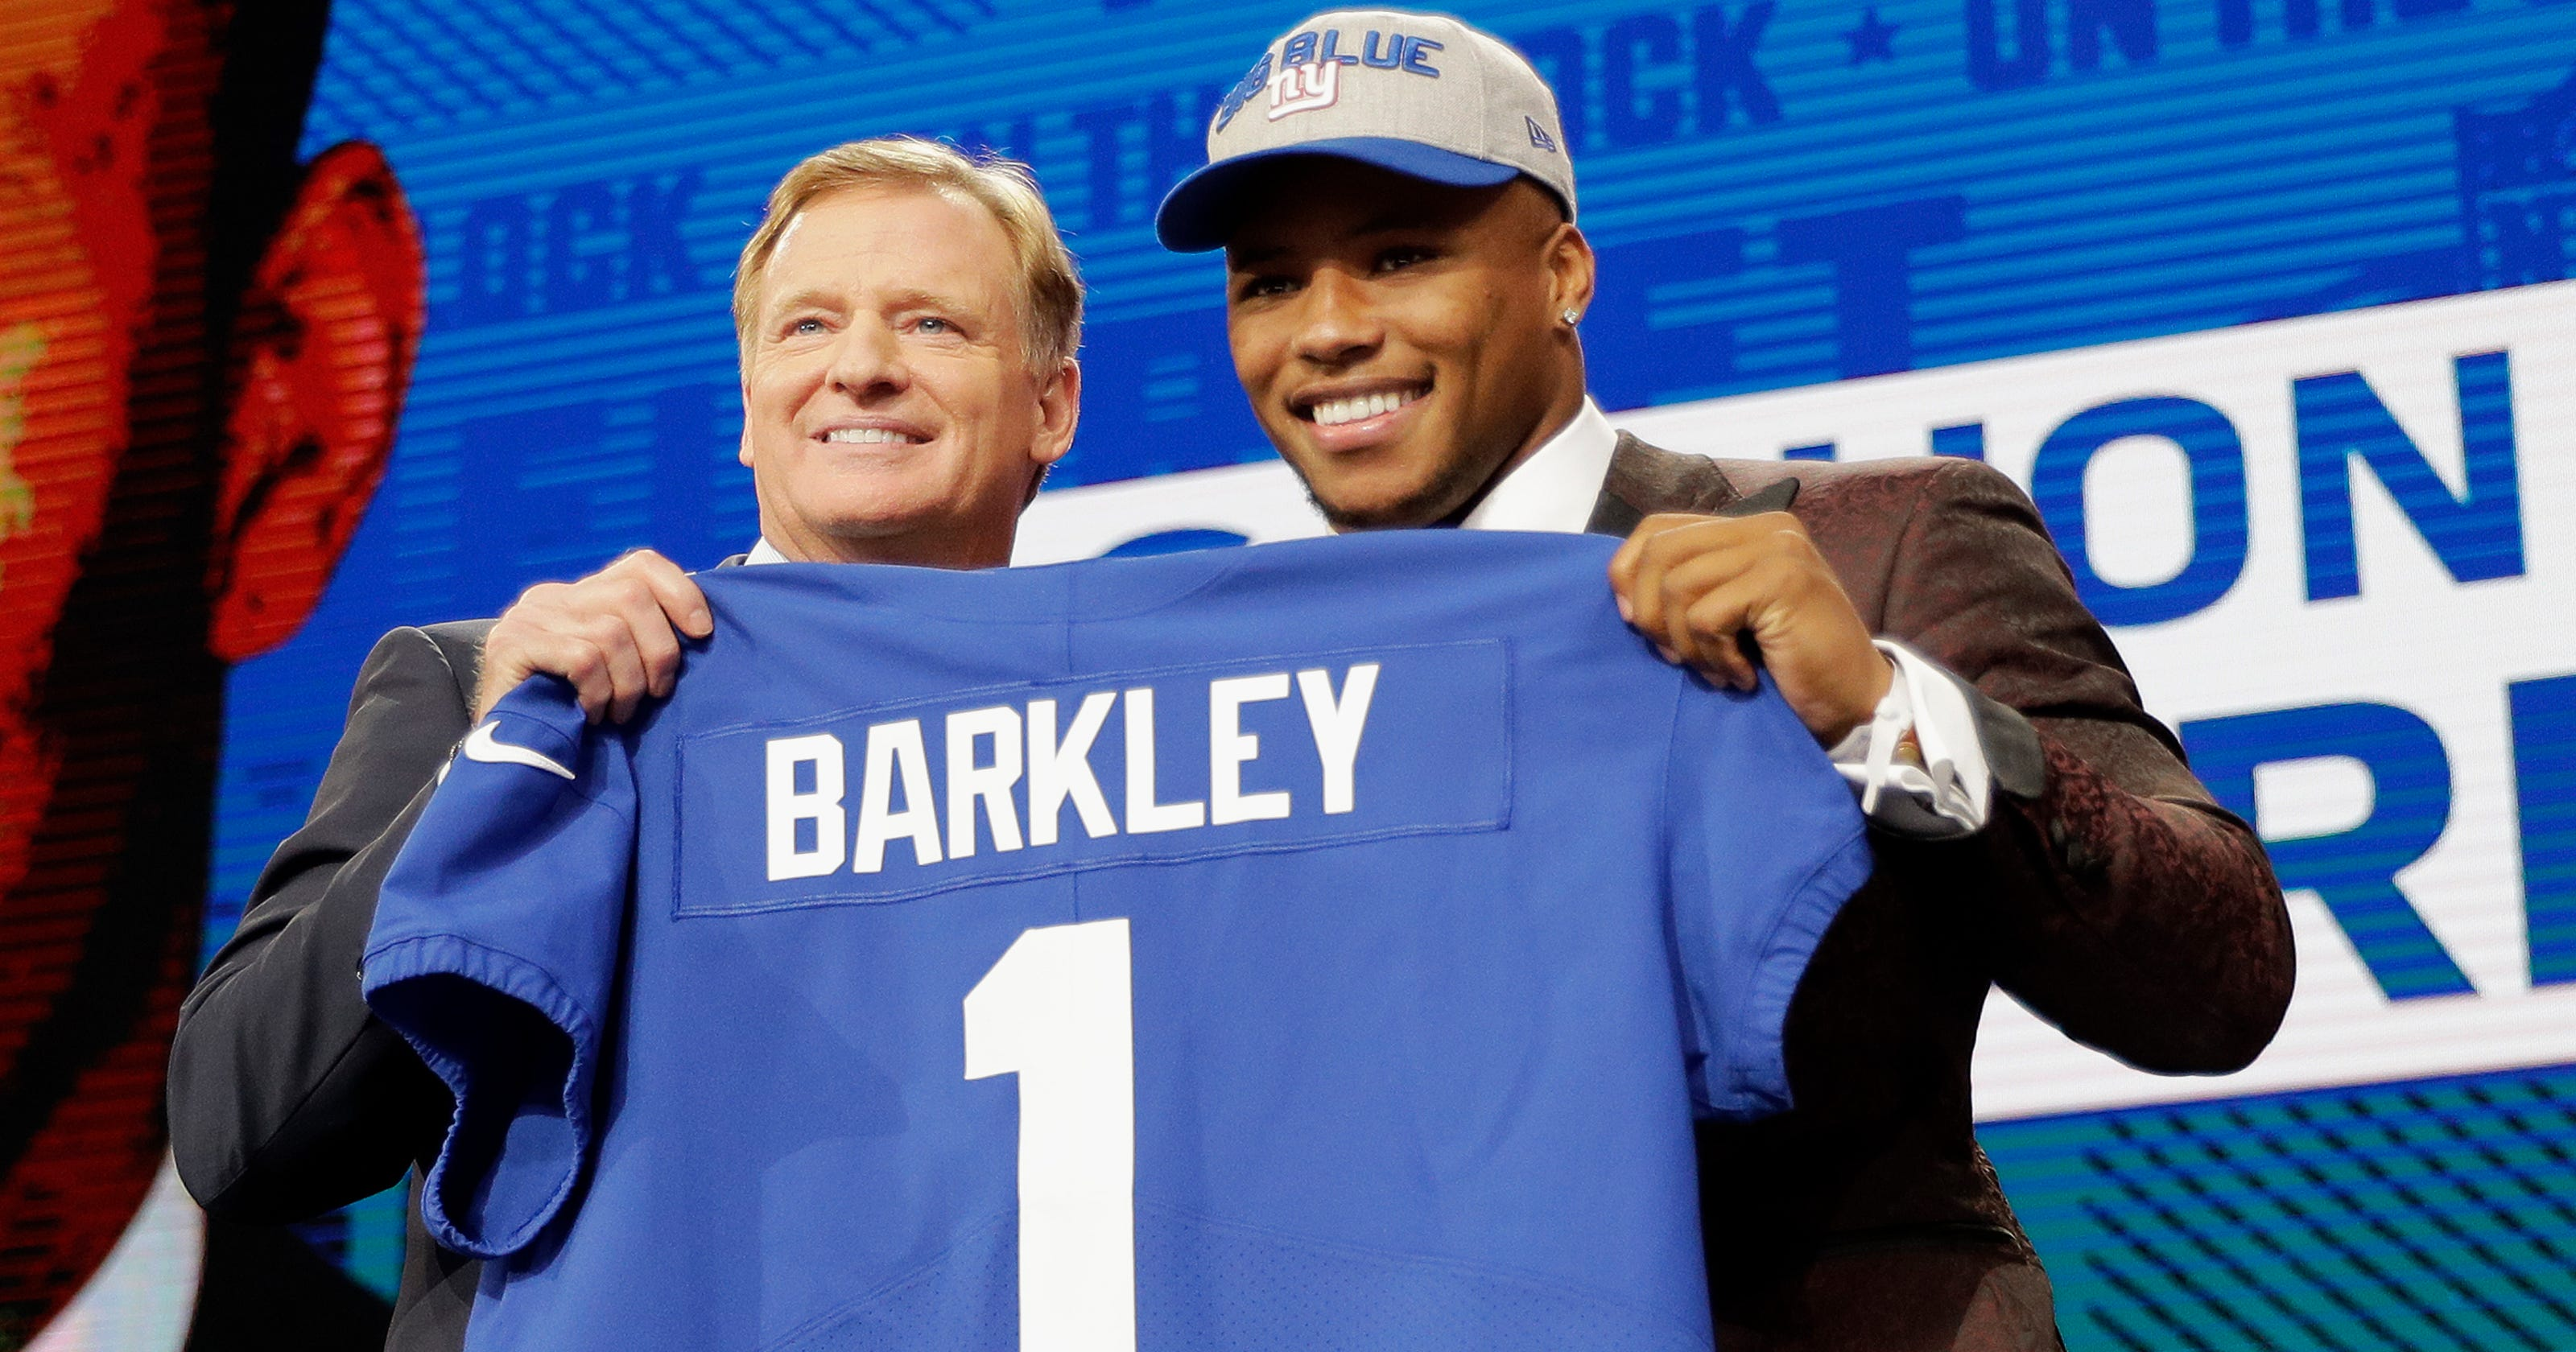 Giants fans react to drafting Saquon Barkley with second pick in NFL Draft 2eac63af0